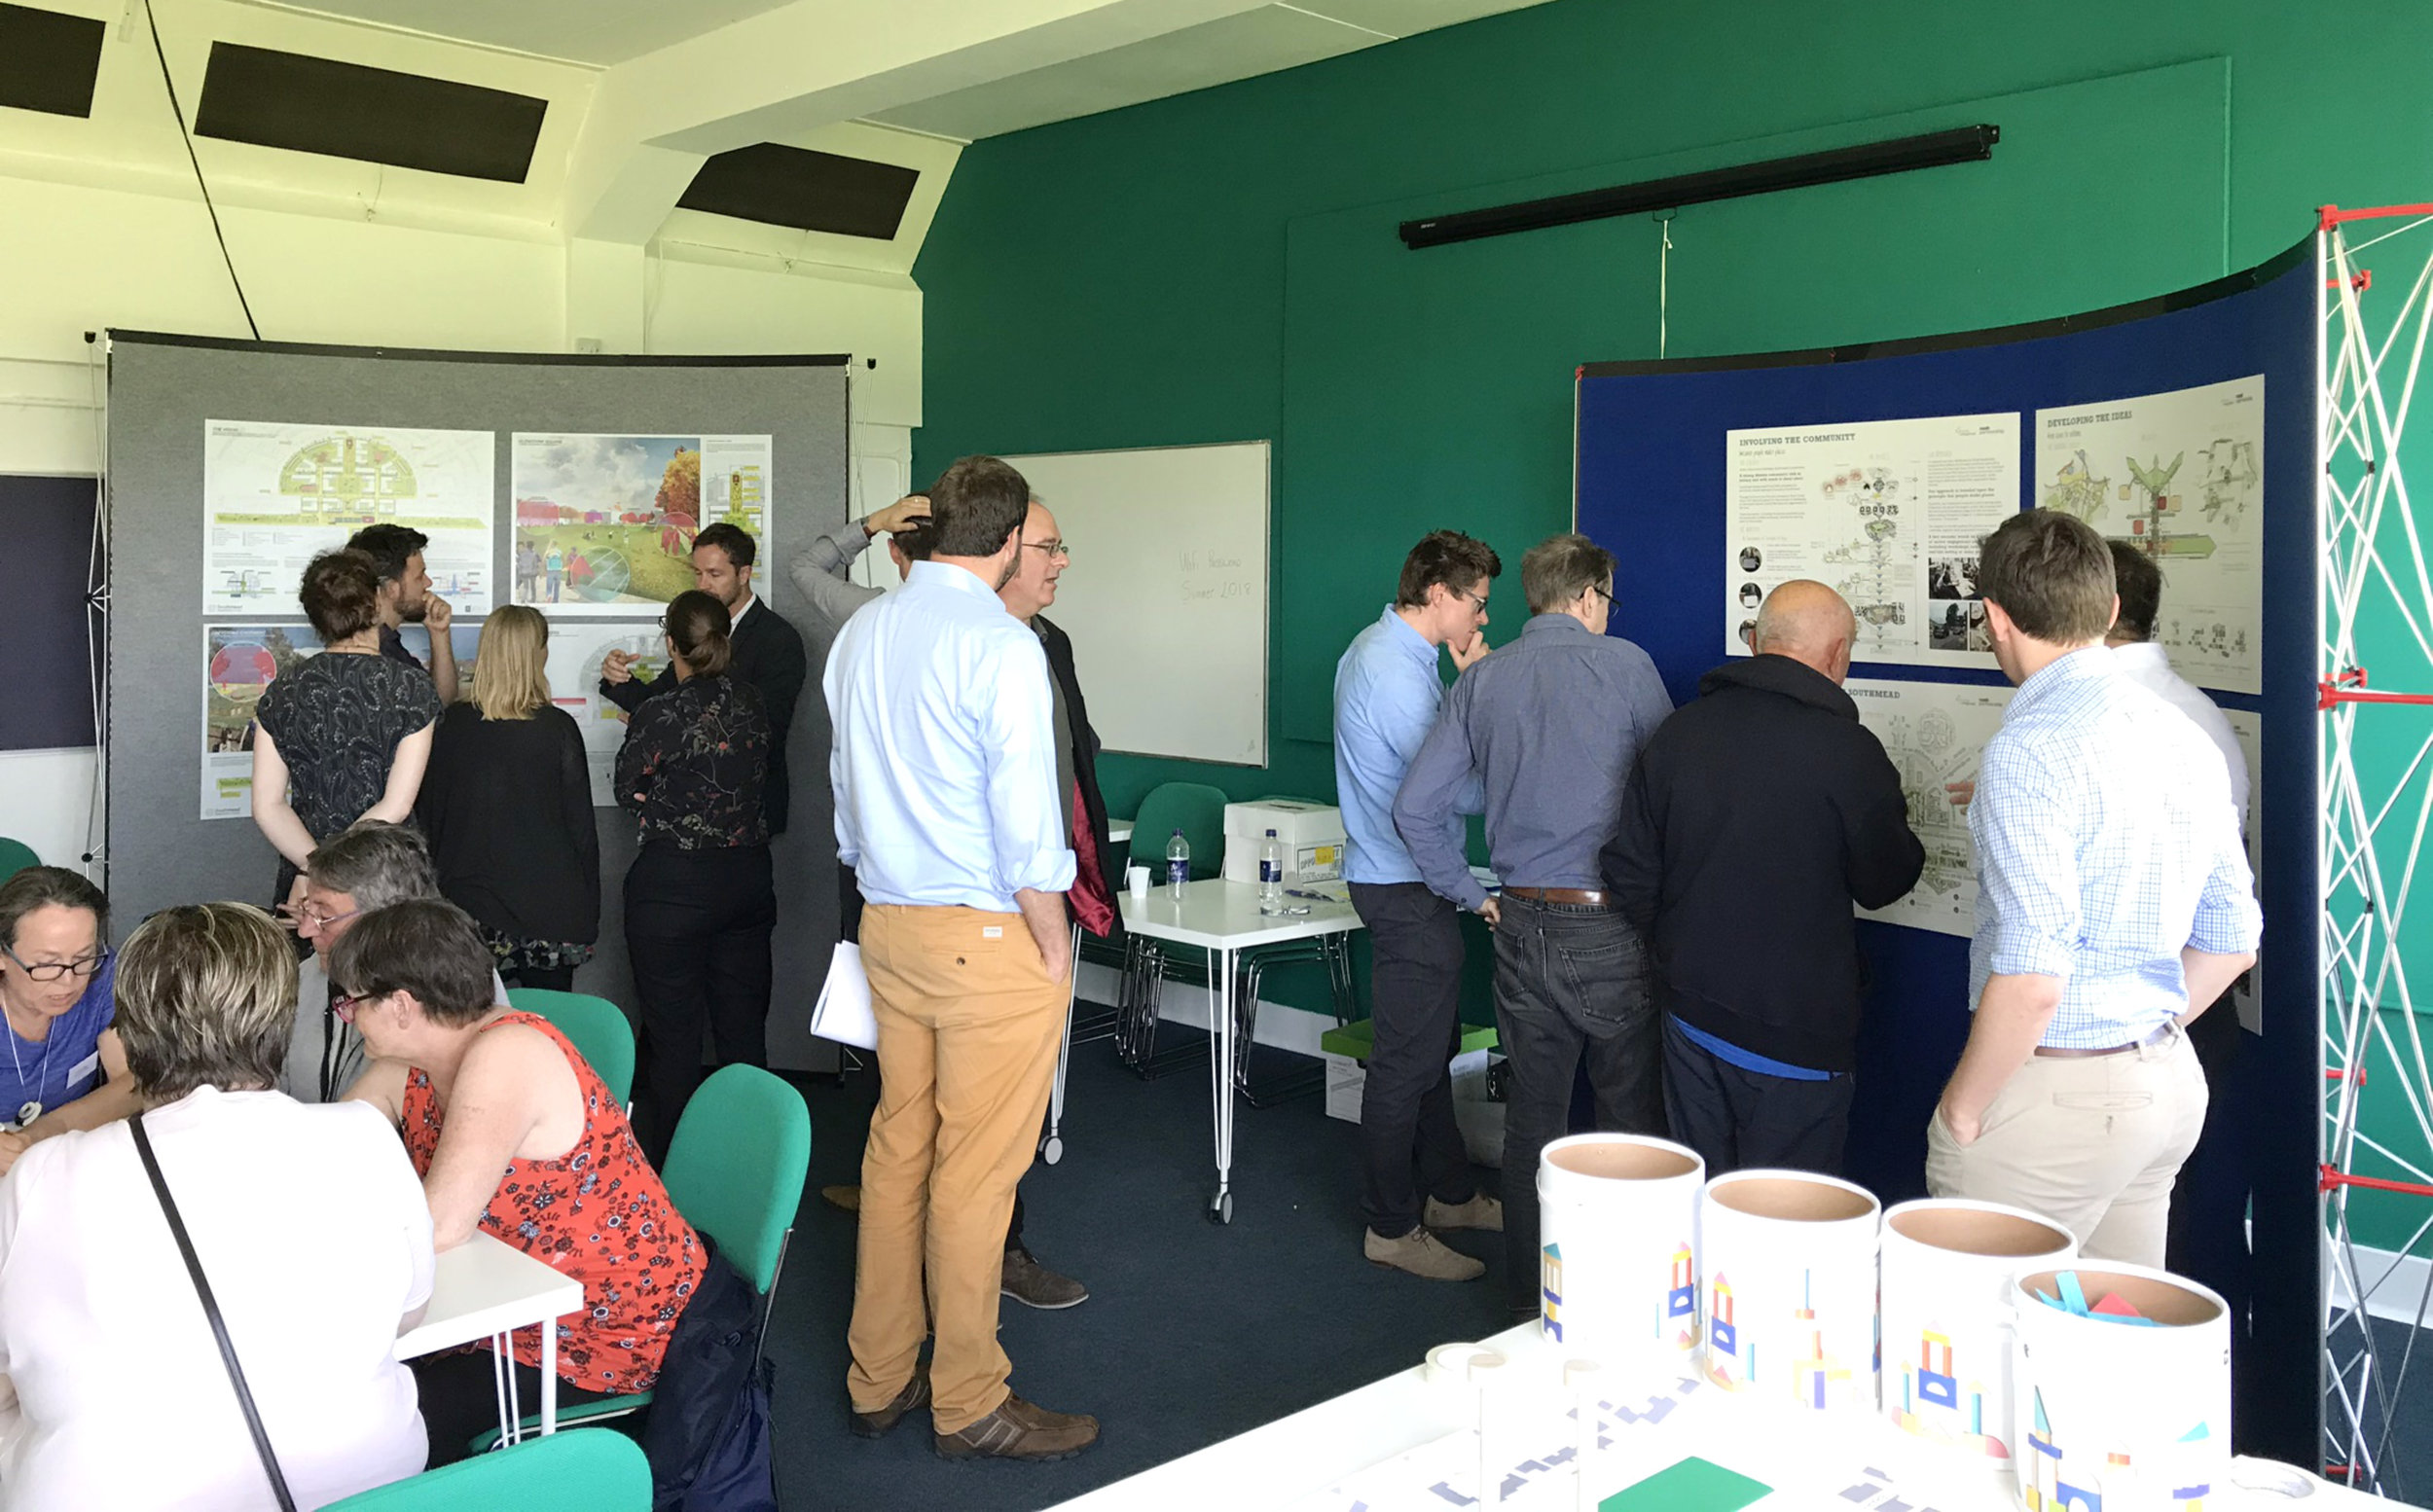 Public consultation underway at the Greenway Centre